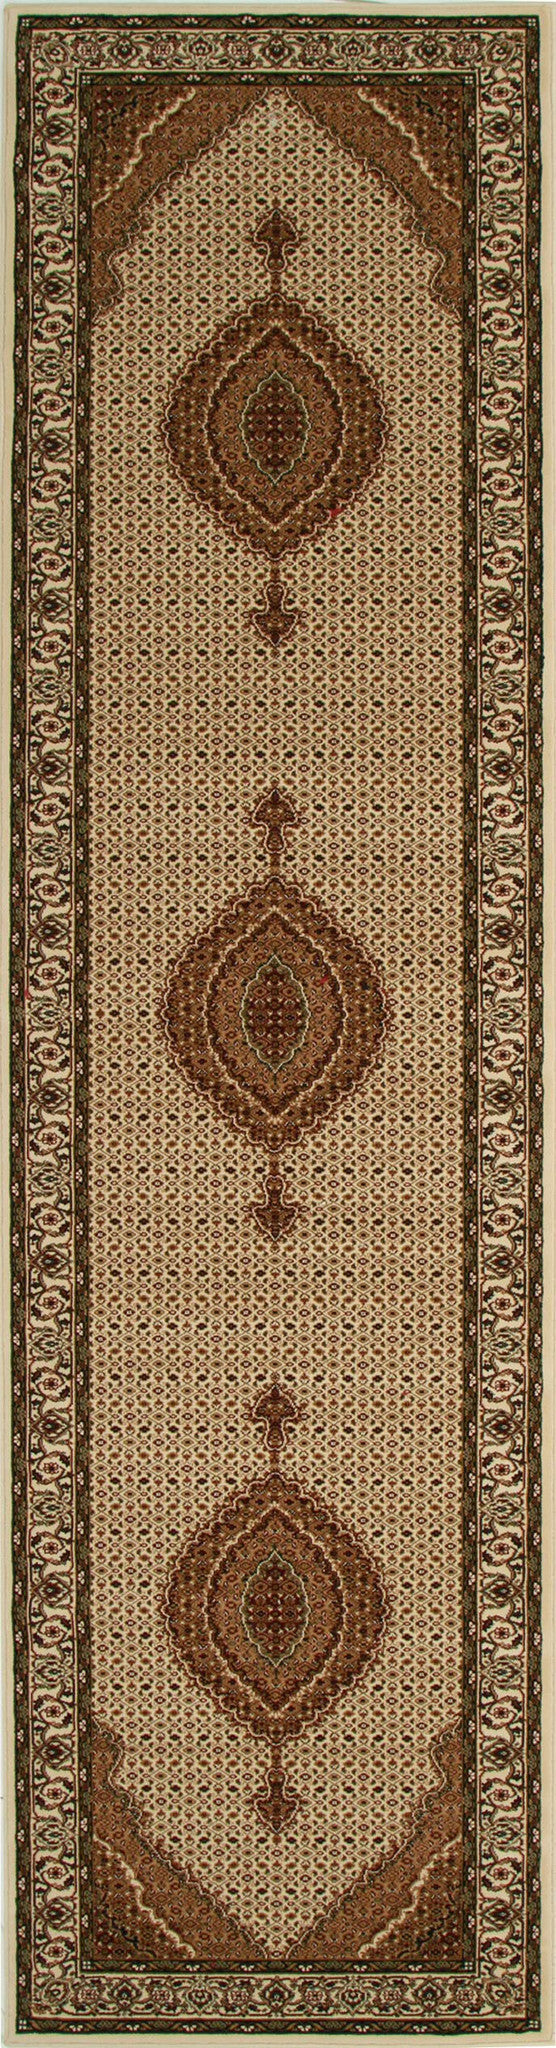 Empire Ark Rug - Cream